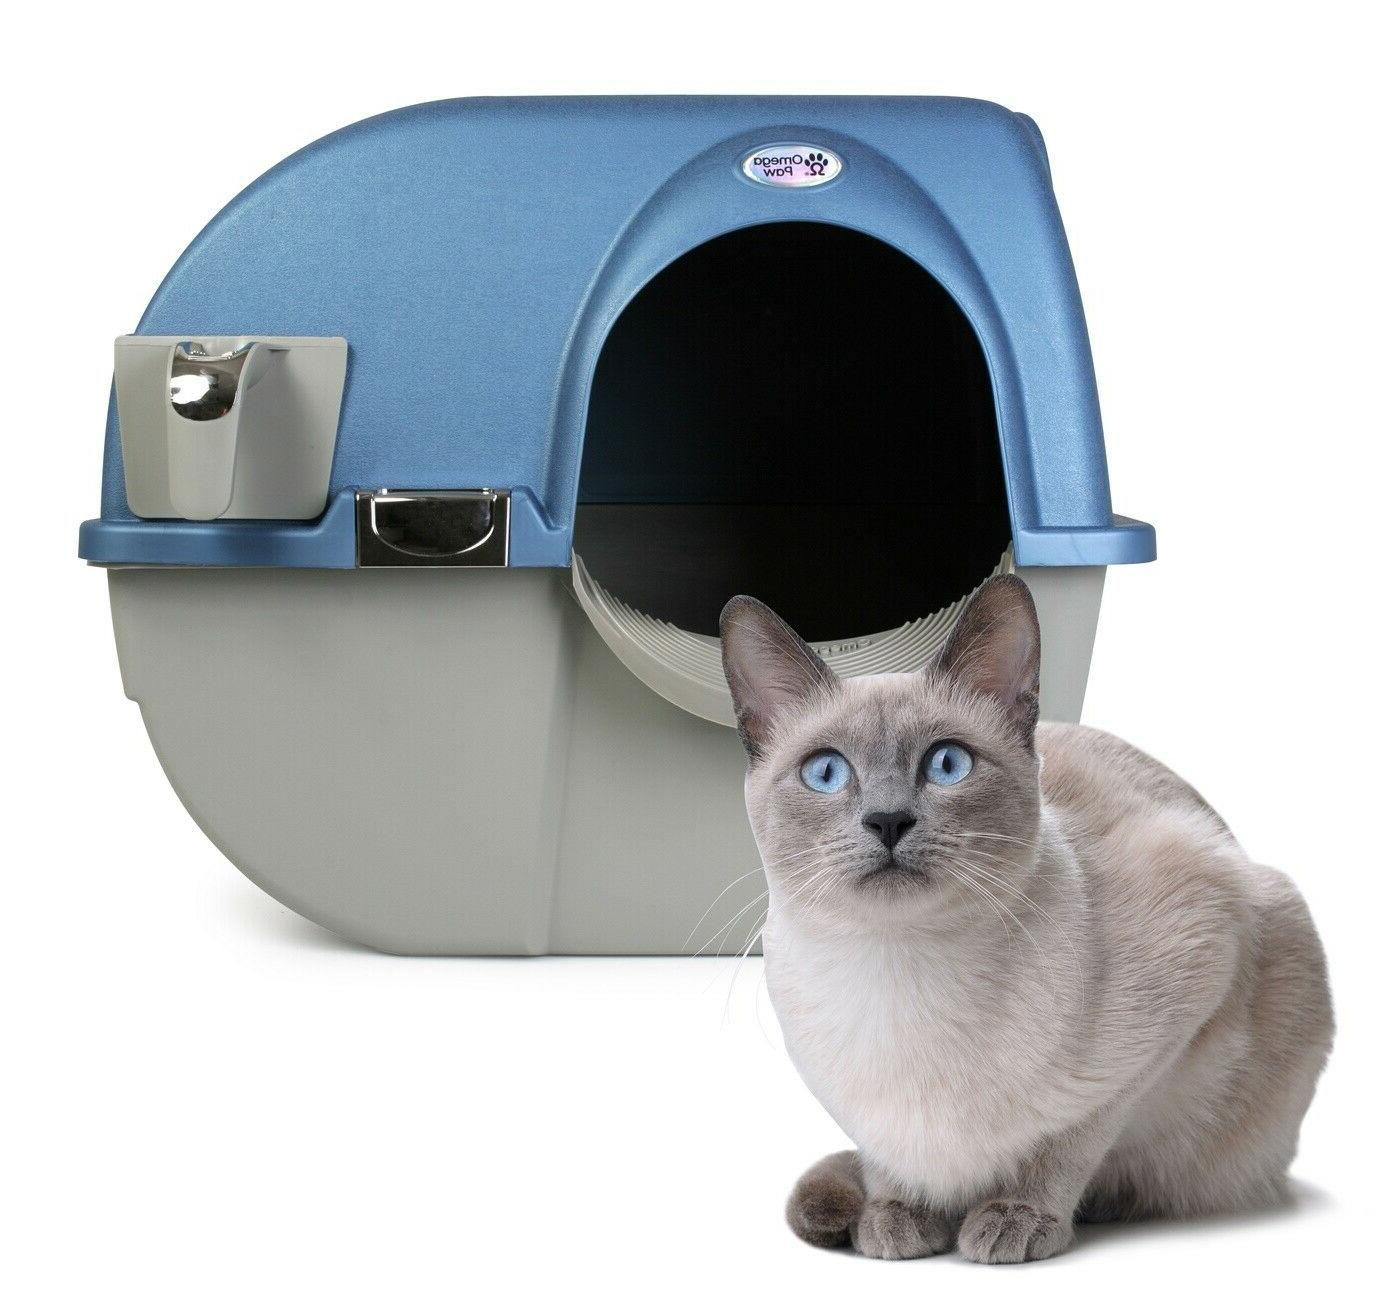 litter box cat self cleaning automatic scooper